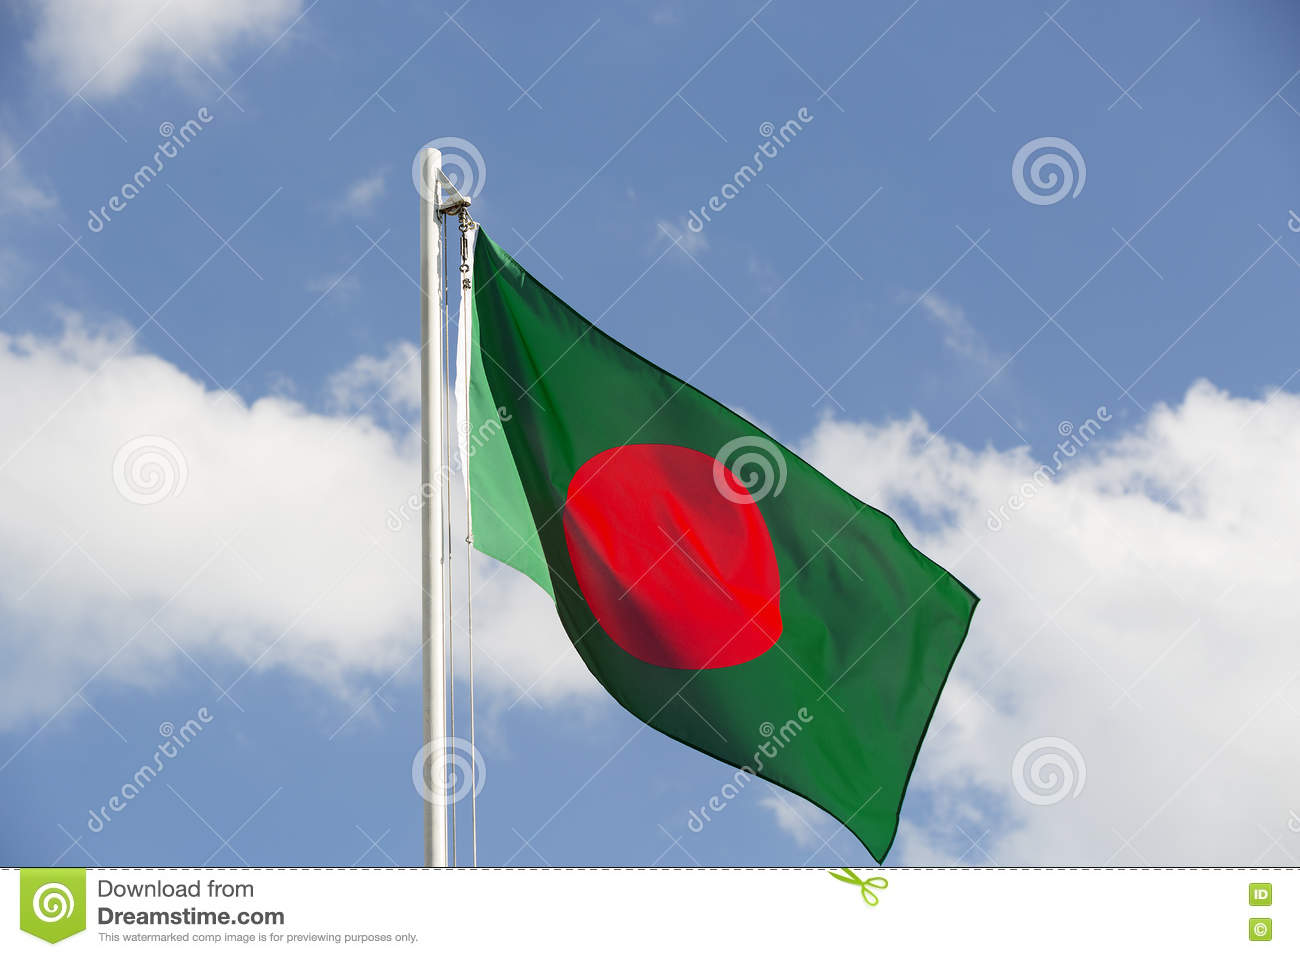 Flag Of Bangladesh Backgrounds, Compatible - PC, Mobile, Gadgets| 1300x957 px